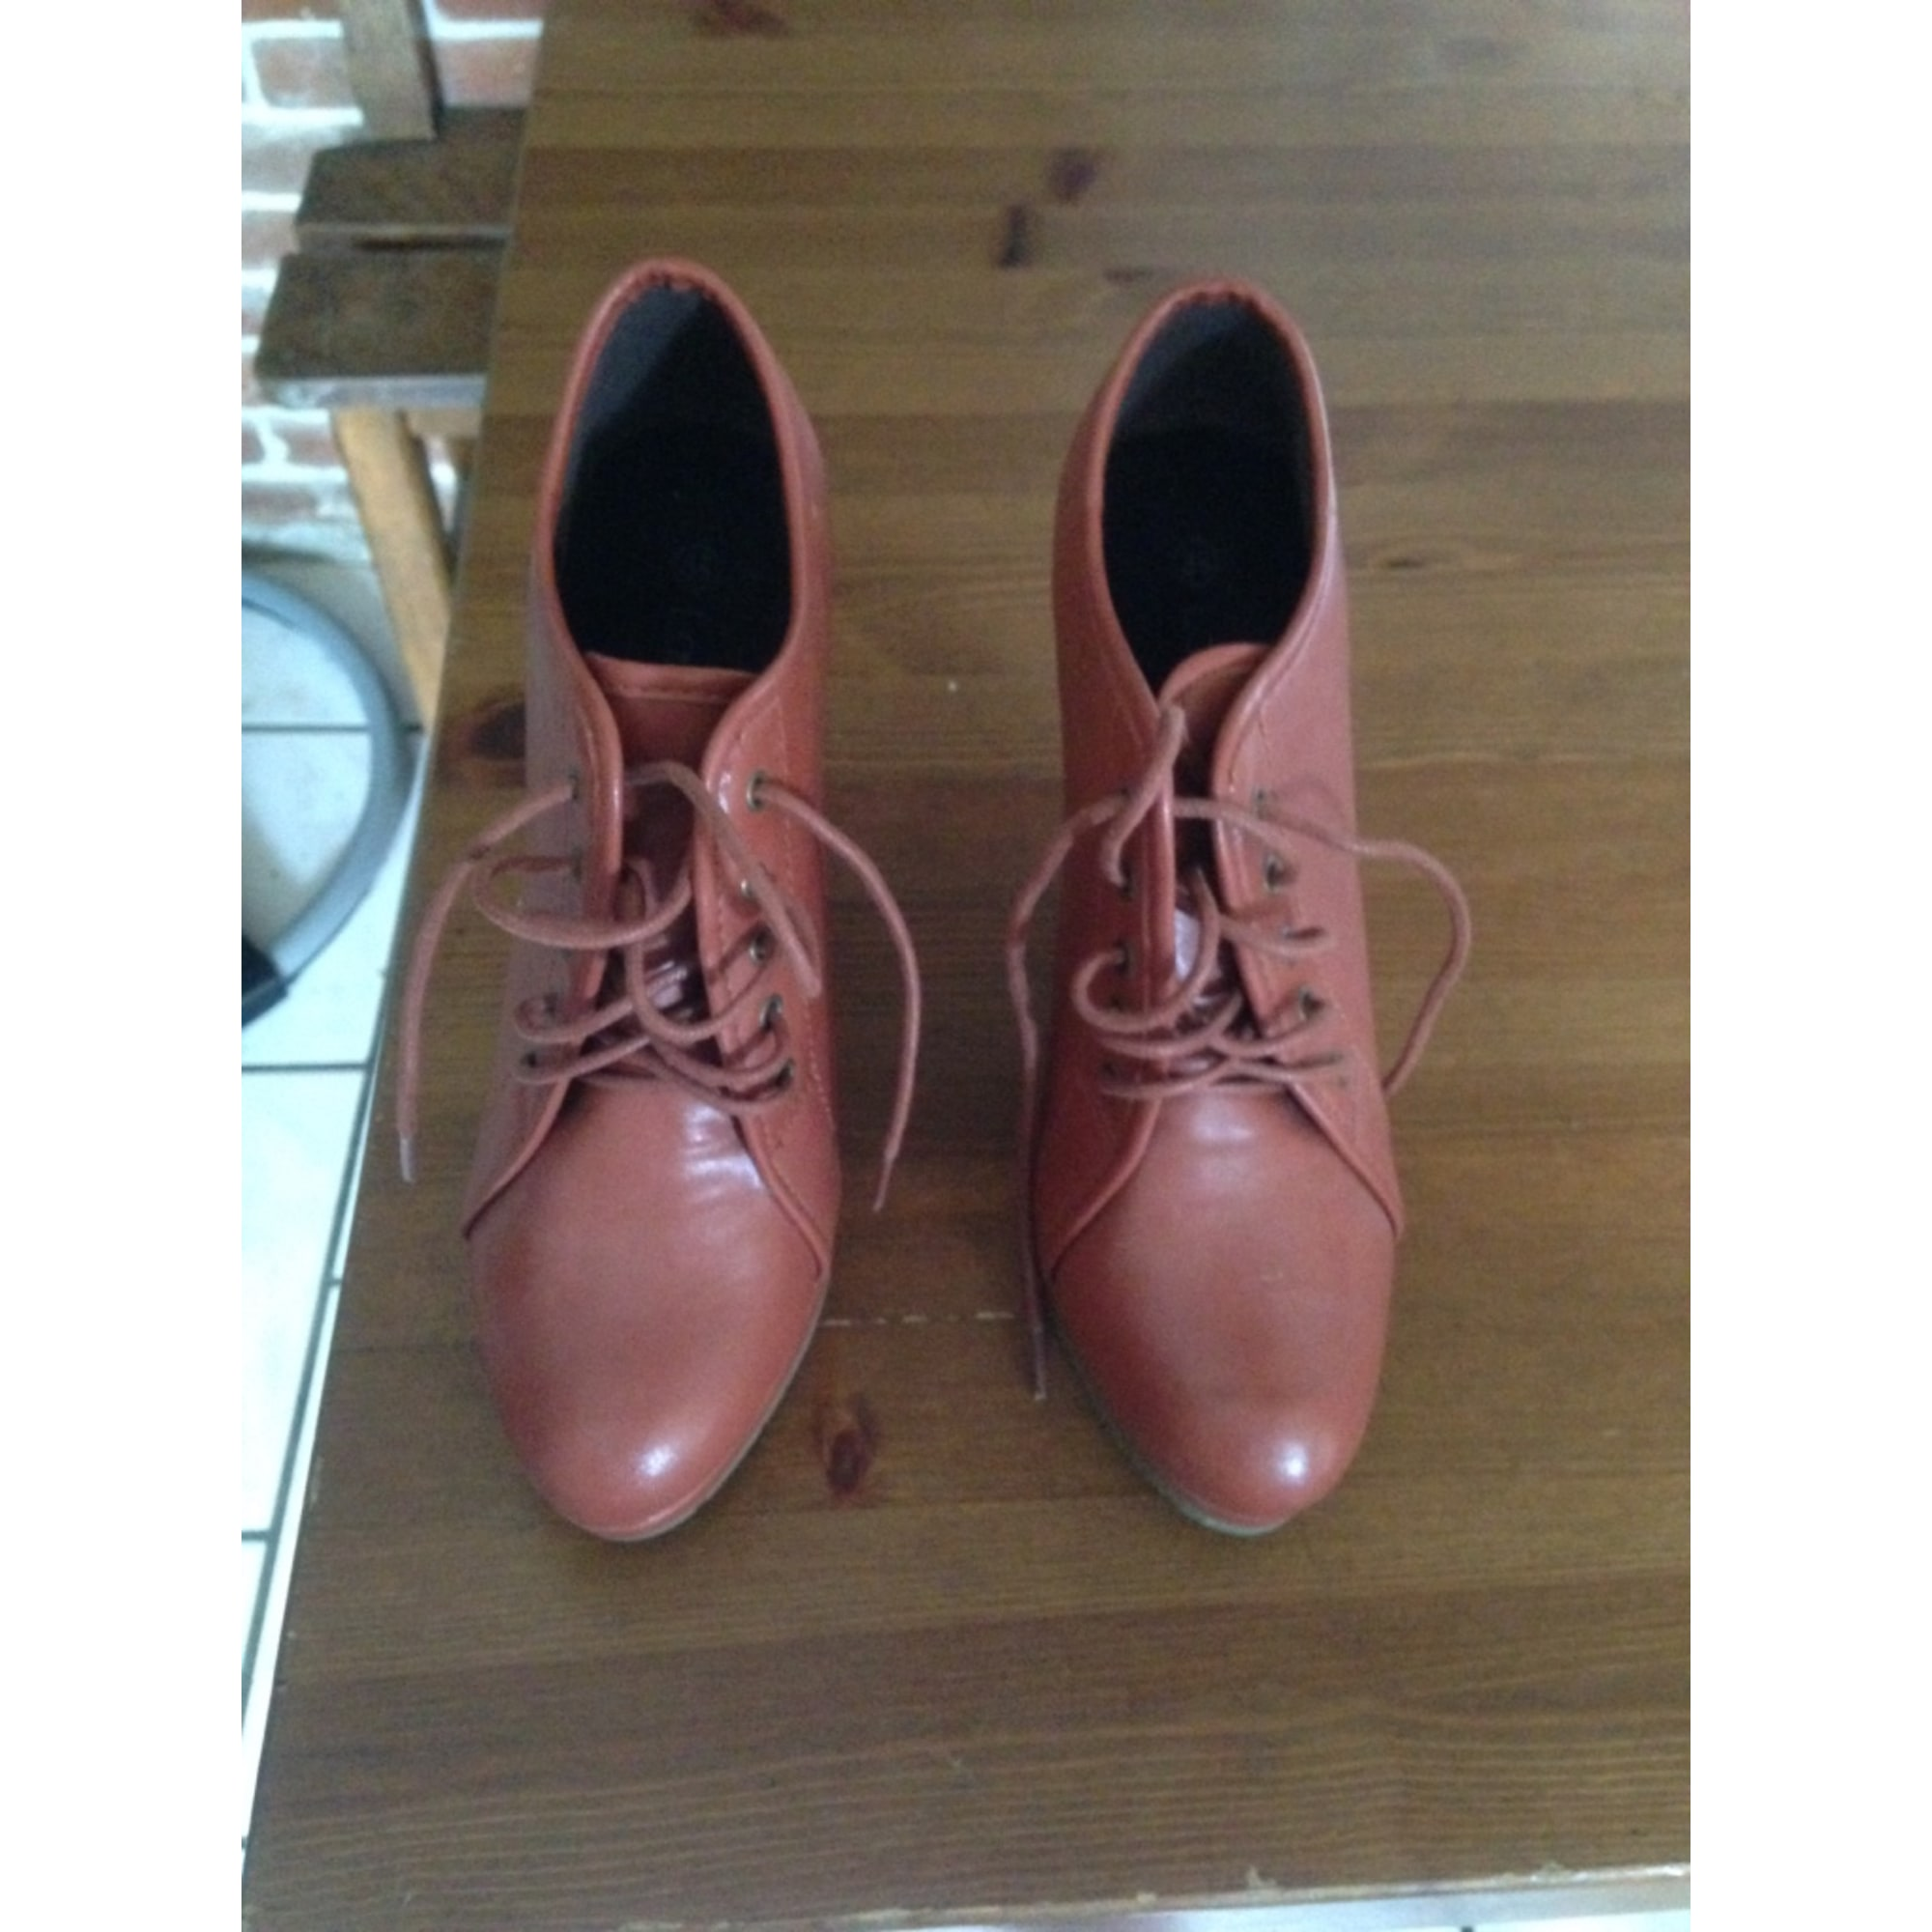 Aux Aux La À Chaussures Compensés amp; Bottines Halle Boots Boots 38 Low Orange xUp0XwqT